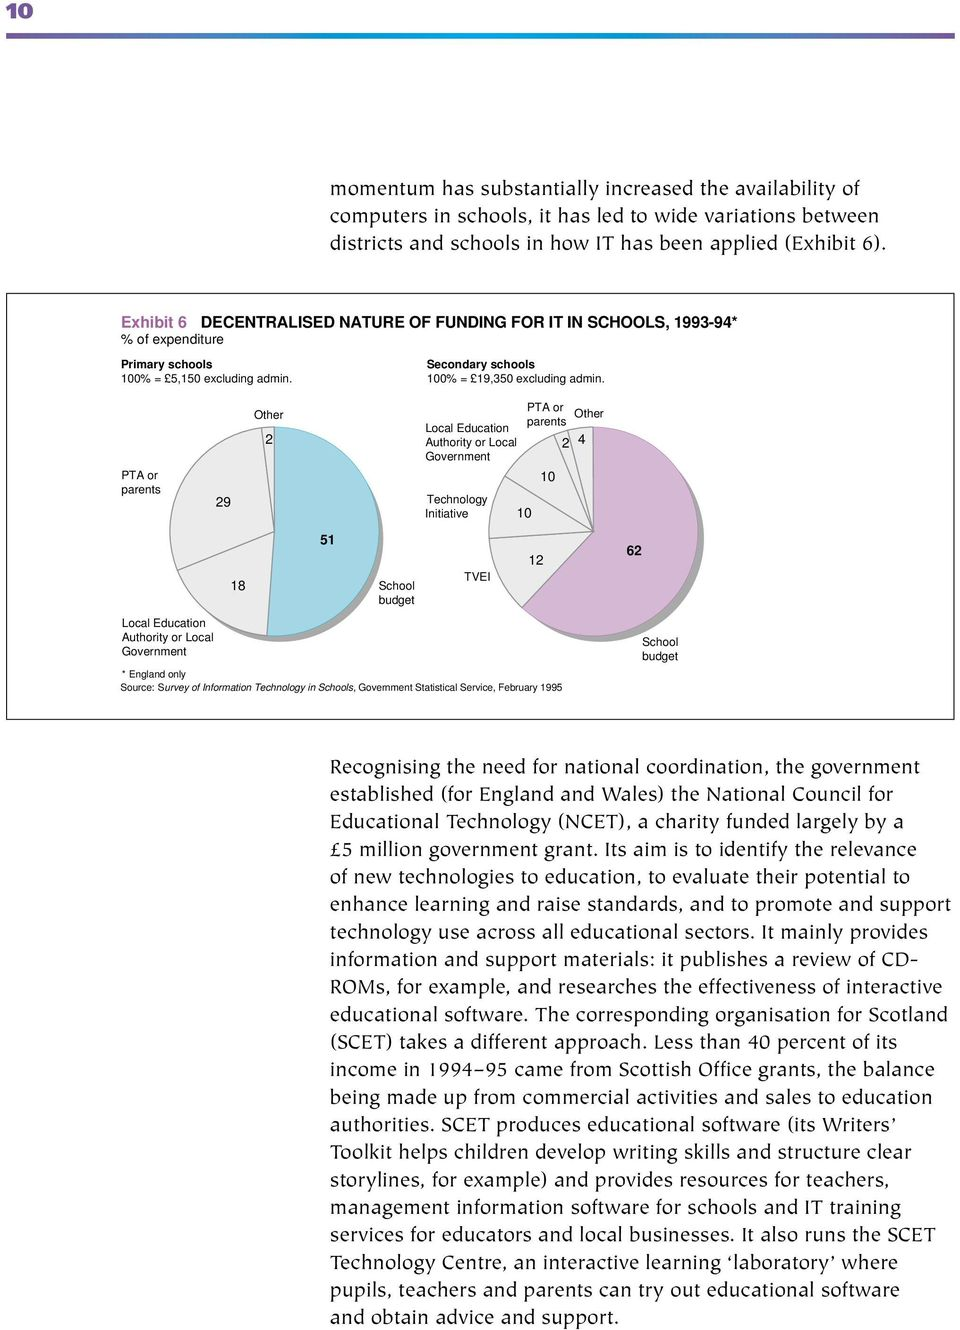 PTA or parents Local Education Authority or Local Government 29 18 Other 2 51 School budget Local Education Authority or Local Government Technology Initiative TVEI PTA or parents Other * England